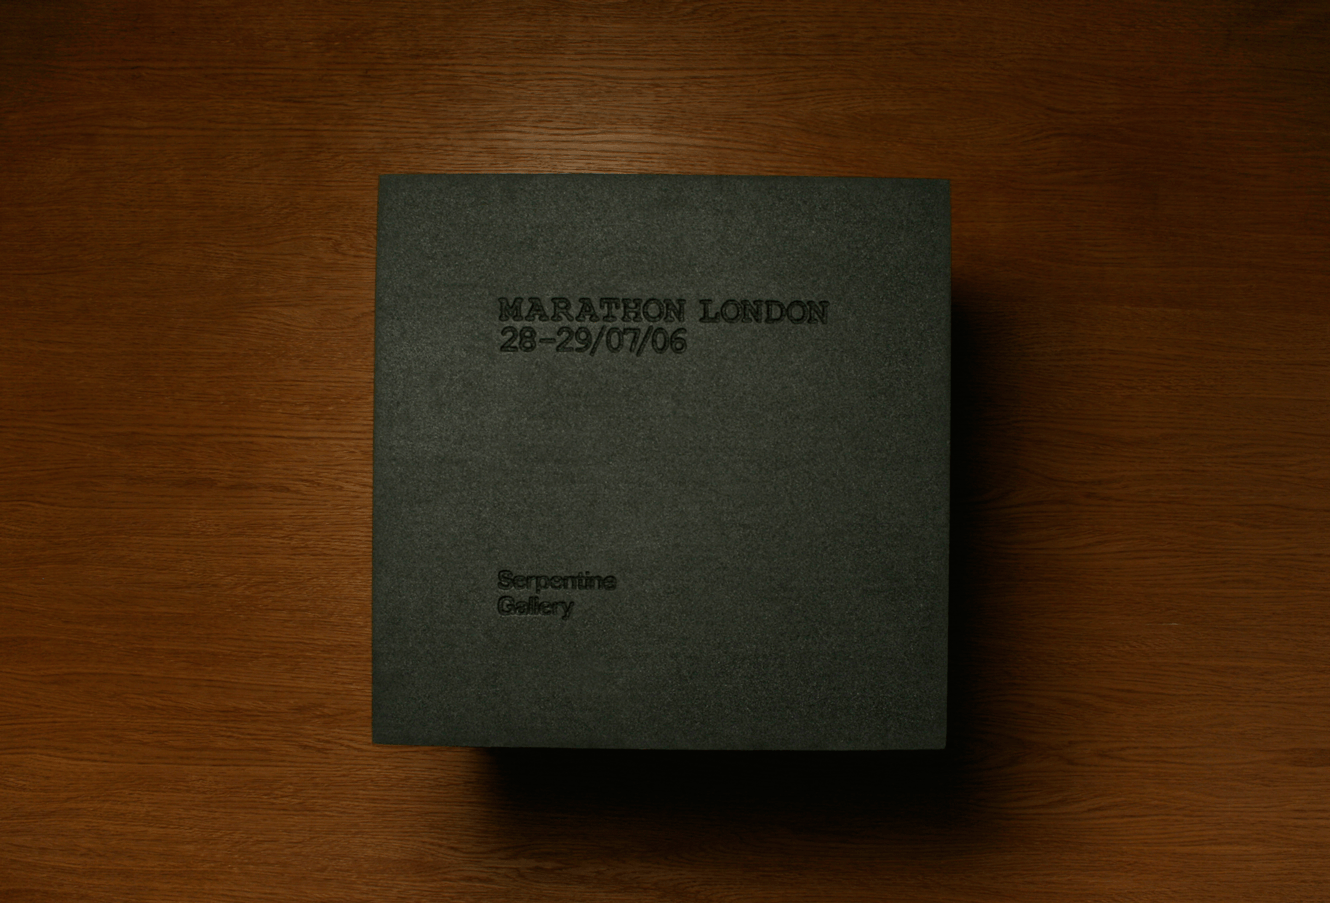 Interview Marathon Book Cover Design For The Serpentine Gallery Designed By &&& Creative